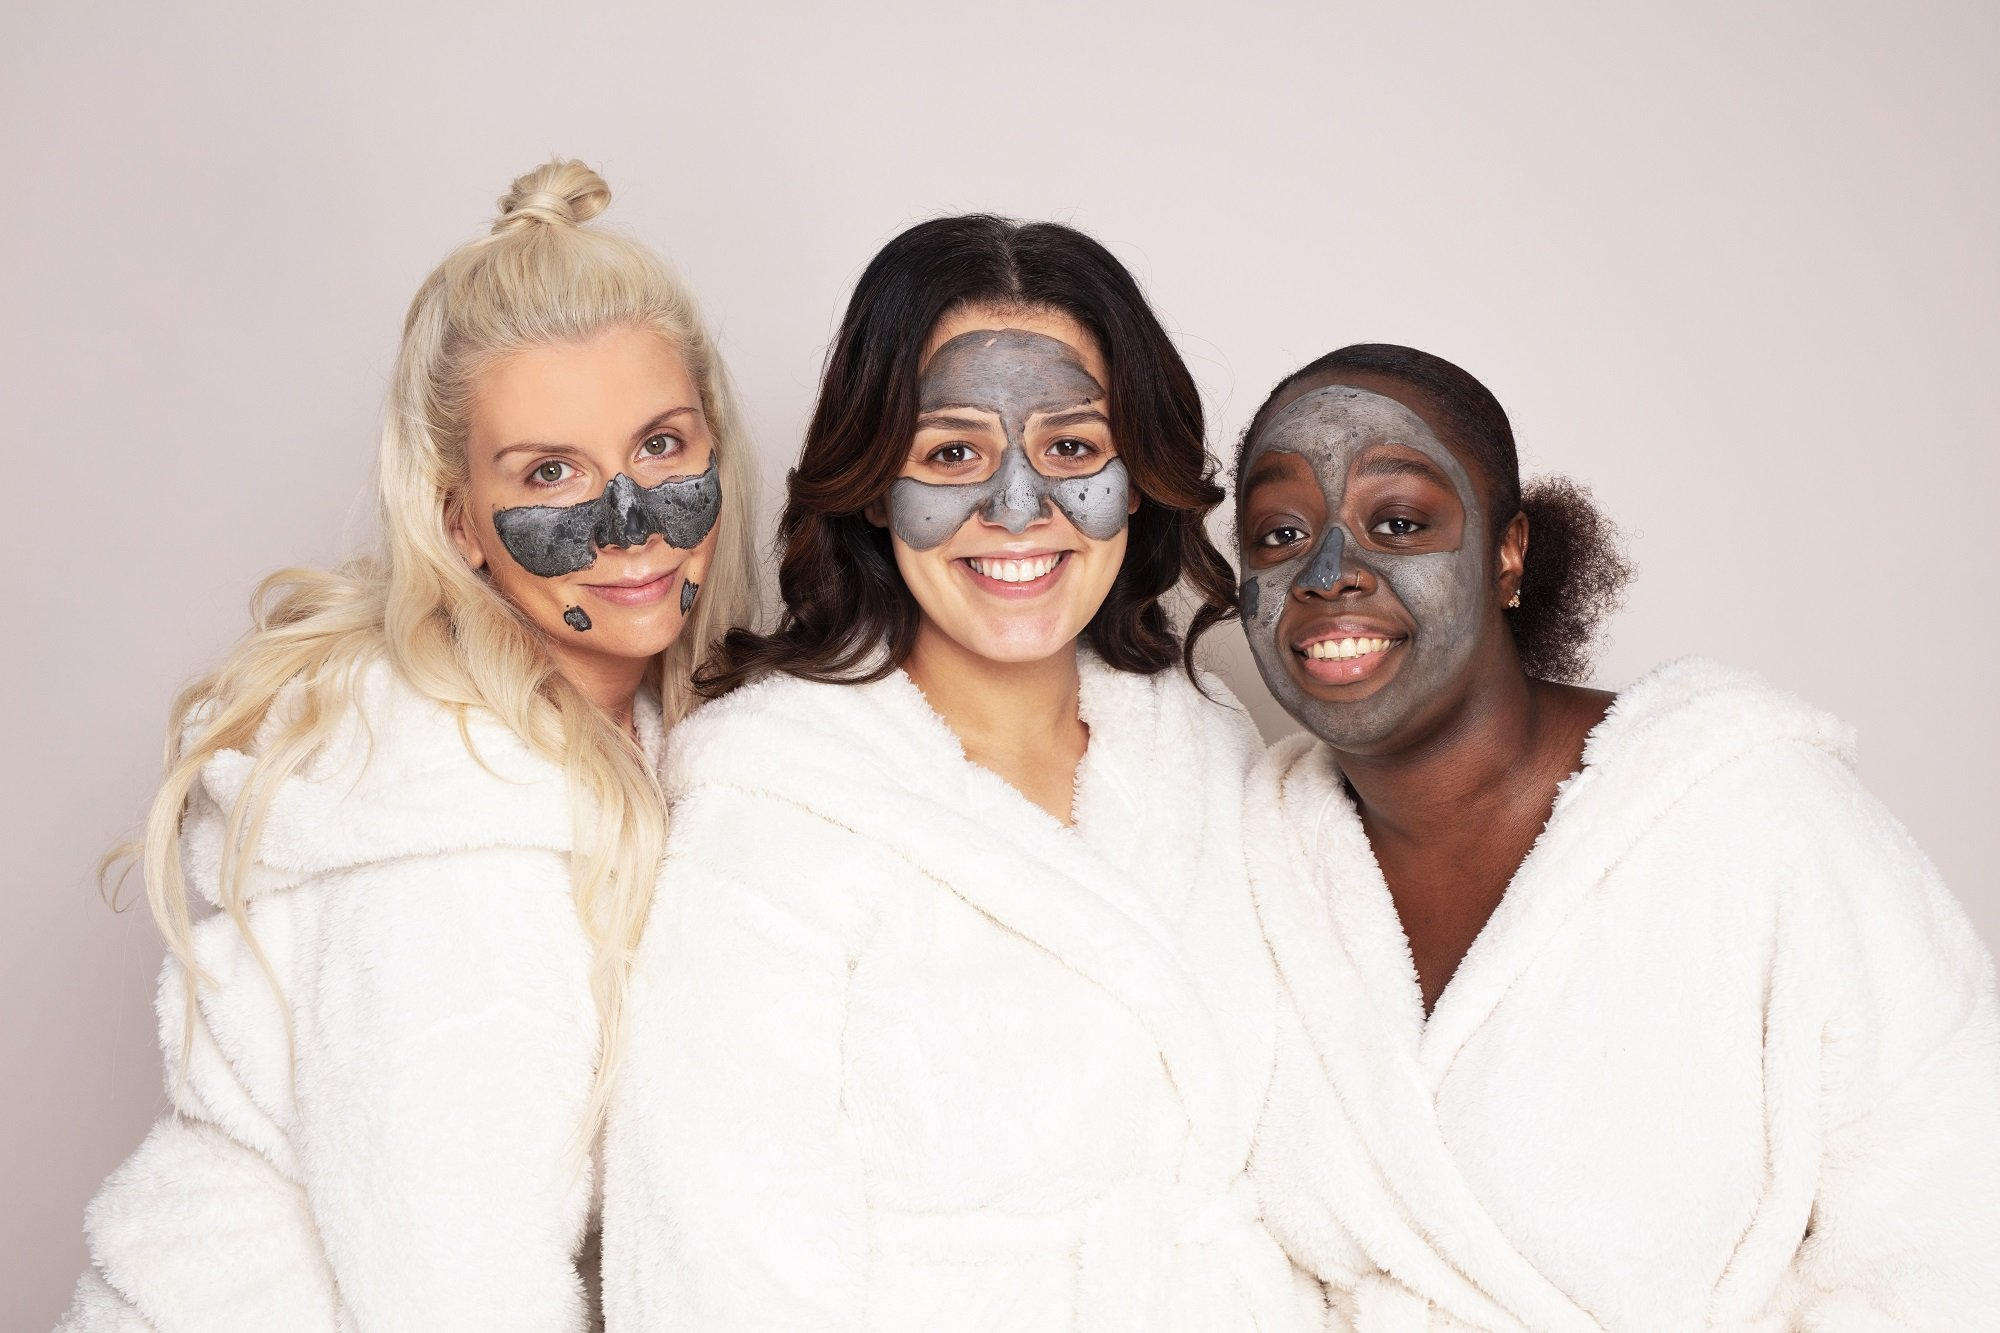 Get SuperMuddy with Glamglow